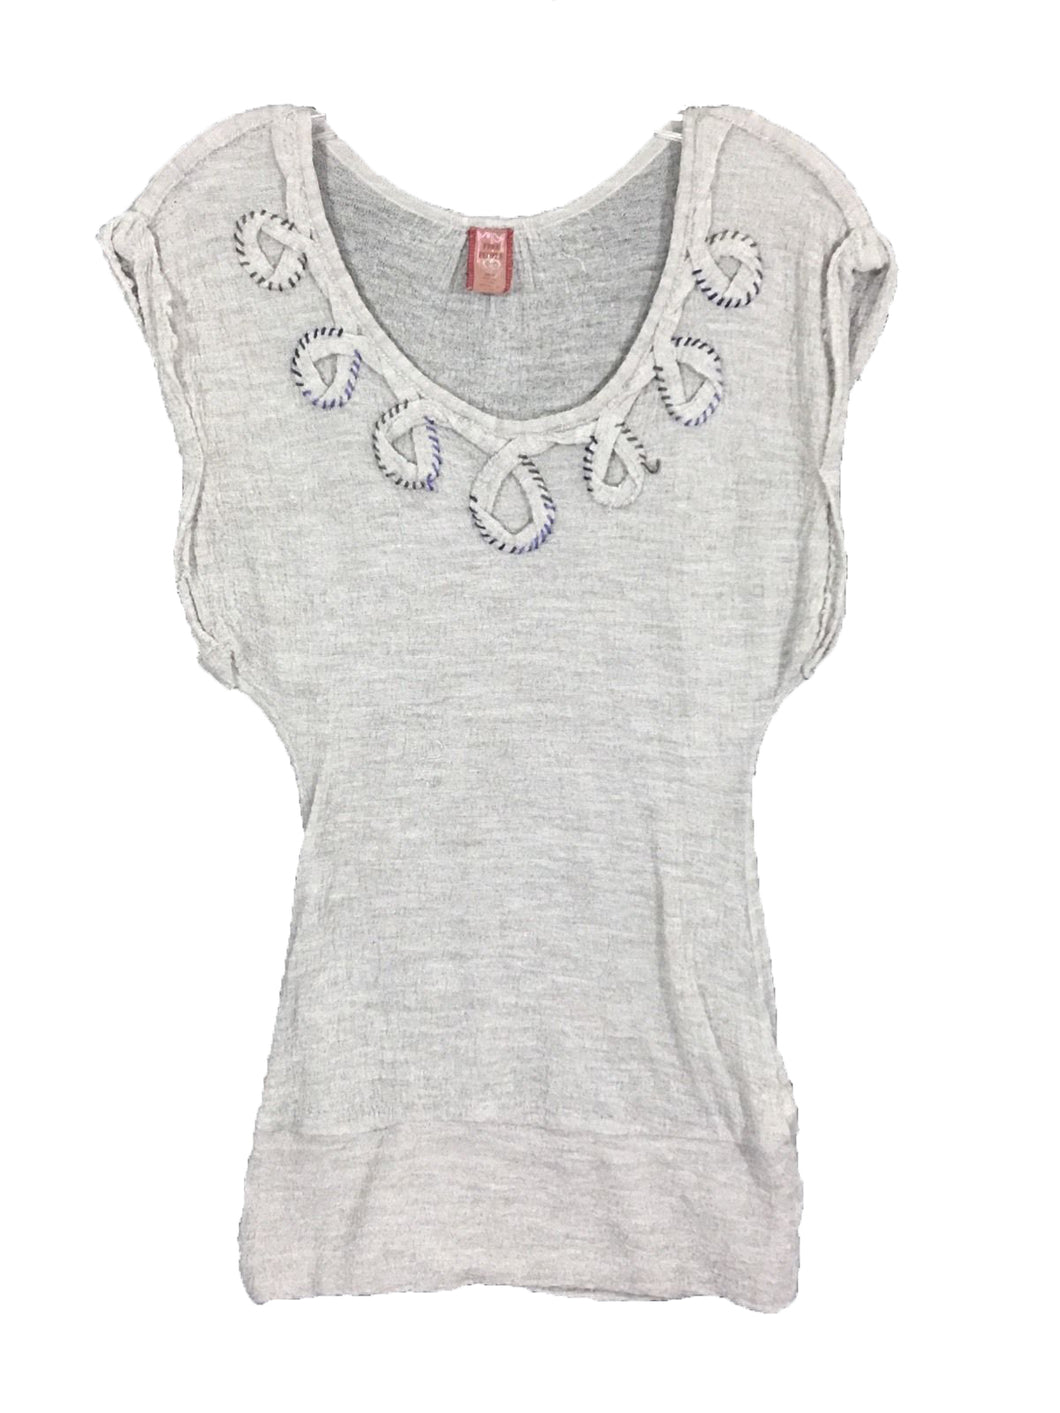 Free People Acrylic Wool Gray Sheer Top Shirt Boho Peasant Hippie Soft Womens XS - Preowned - FunkyCrap Boutique